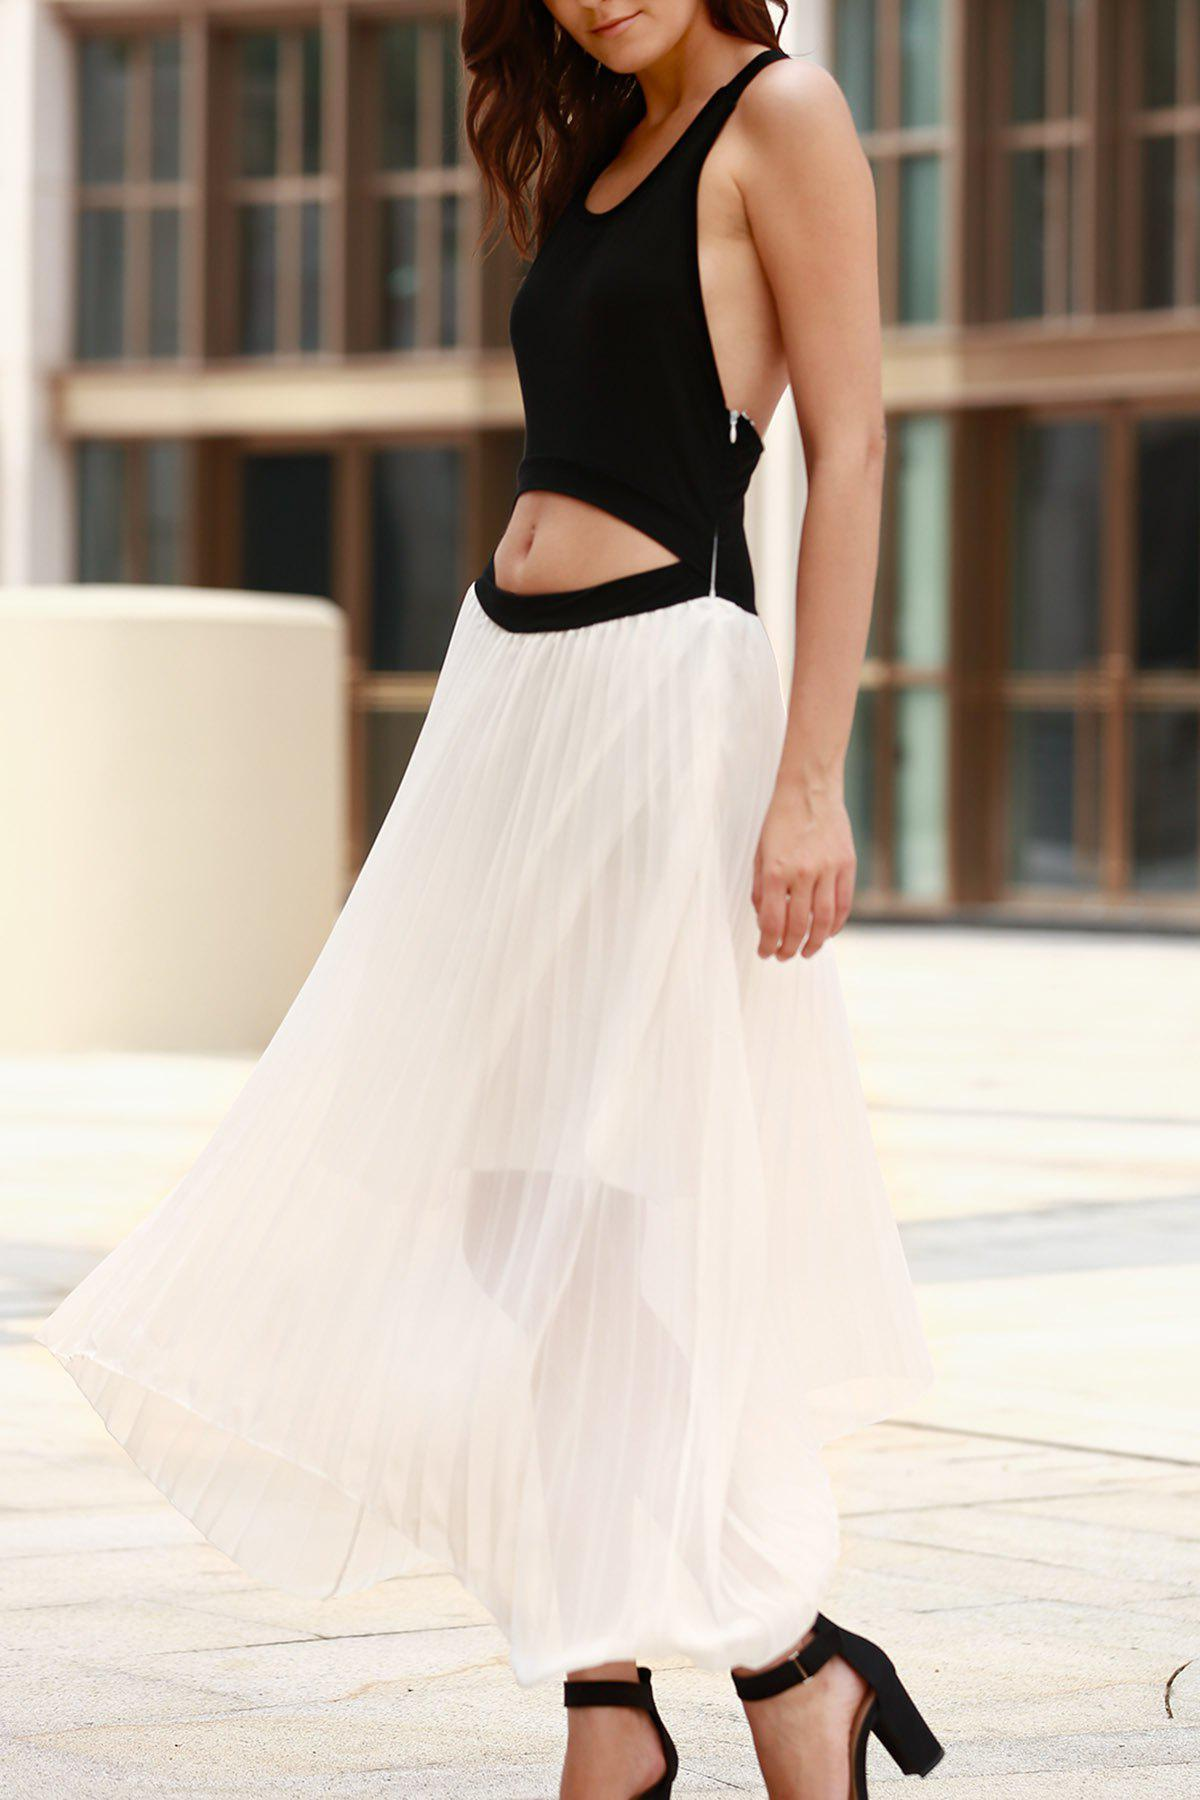 Fashionable Jewel Neck Color Block Splicing Backless Sleeveless Dress For Women